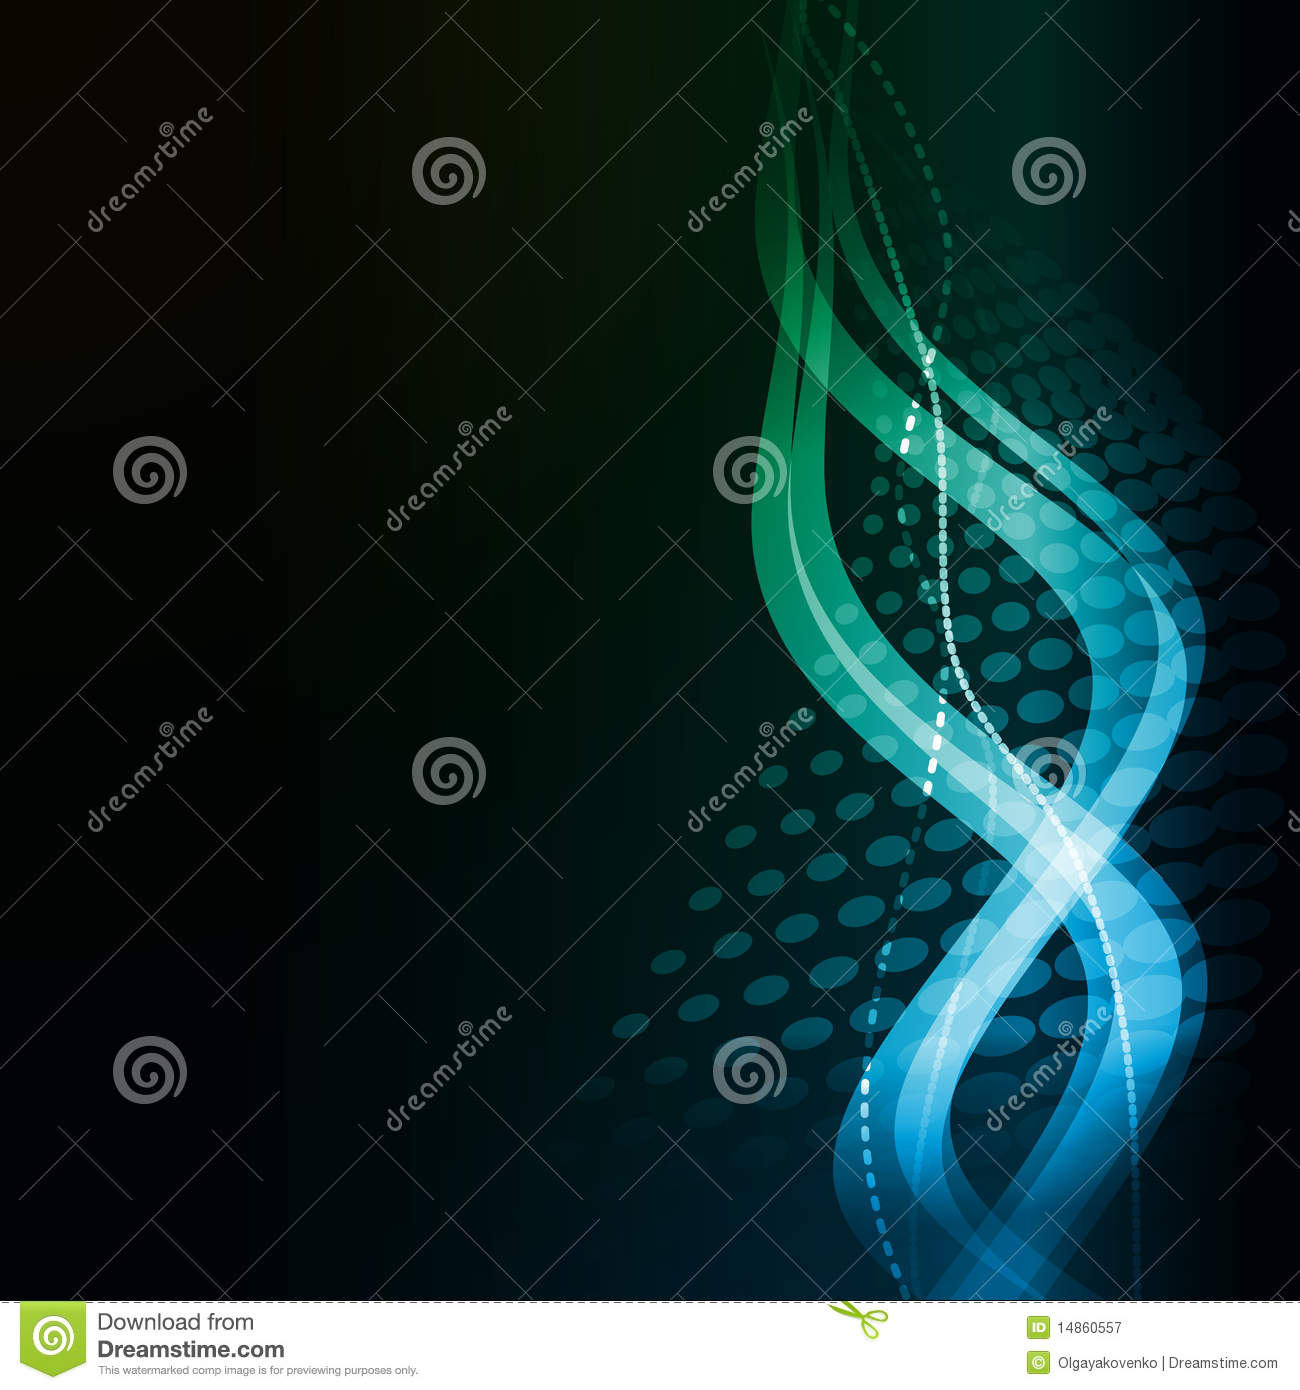 Abstract background - bands